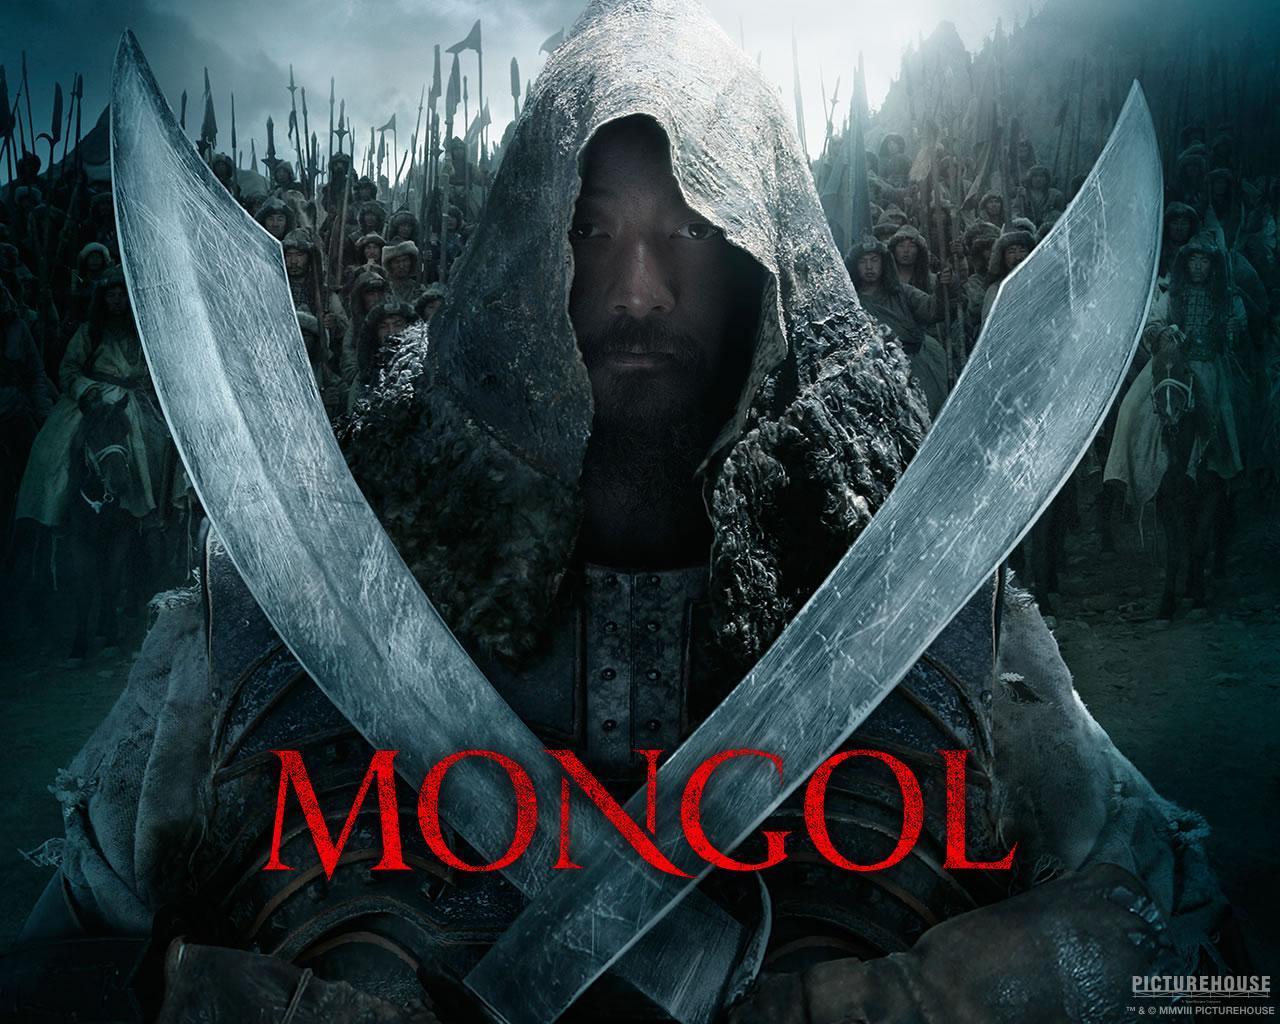 Image Gallery For Mongol The Early Years Of Genghis Khan Filmaffinity